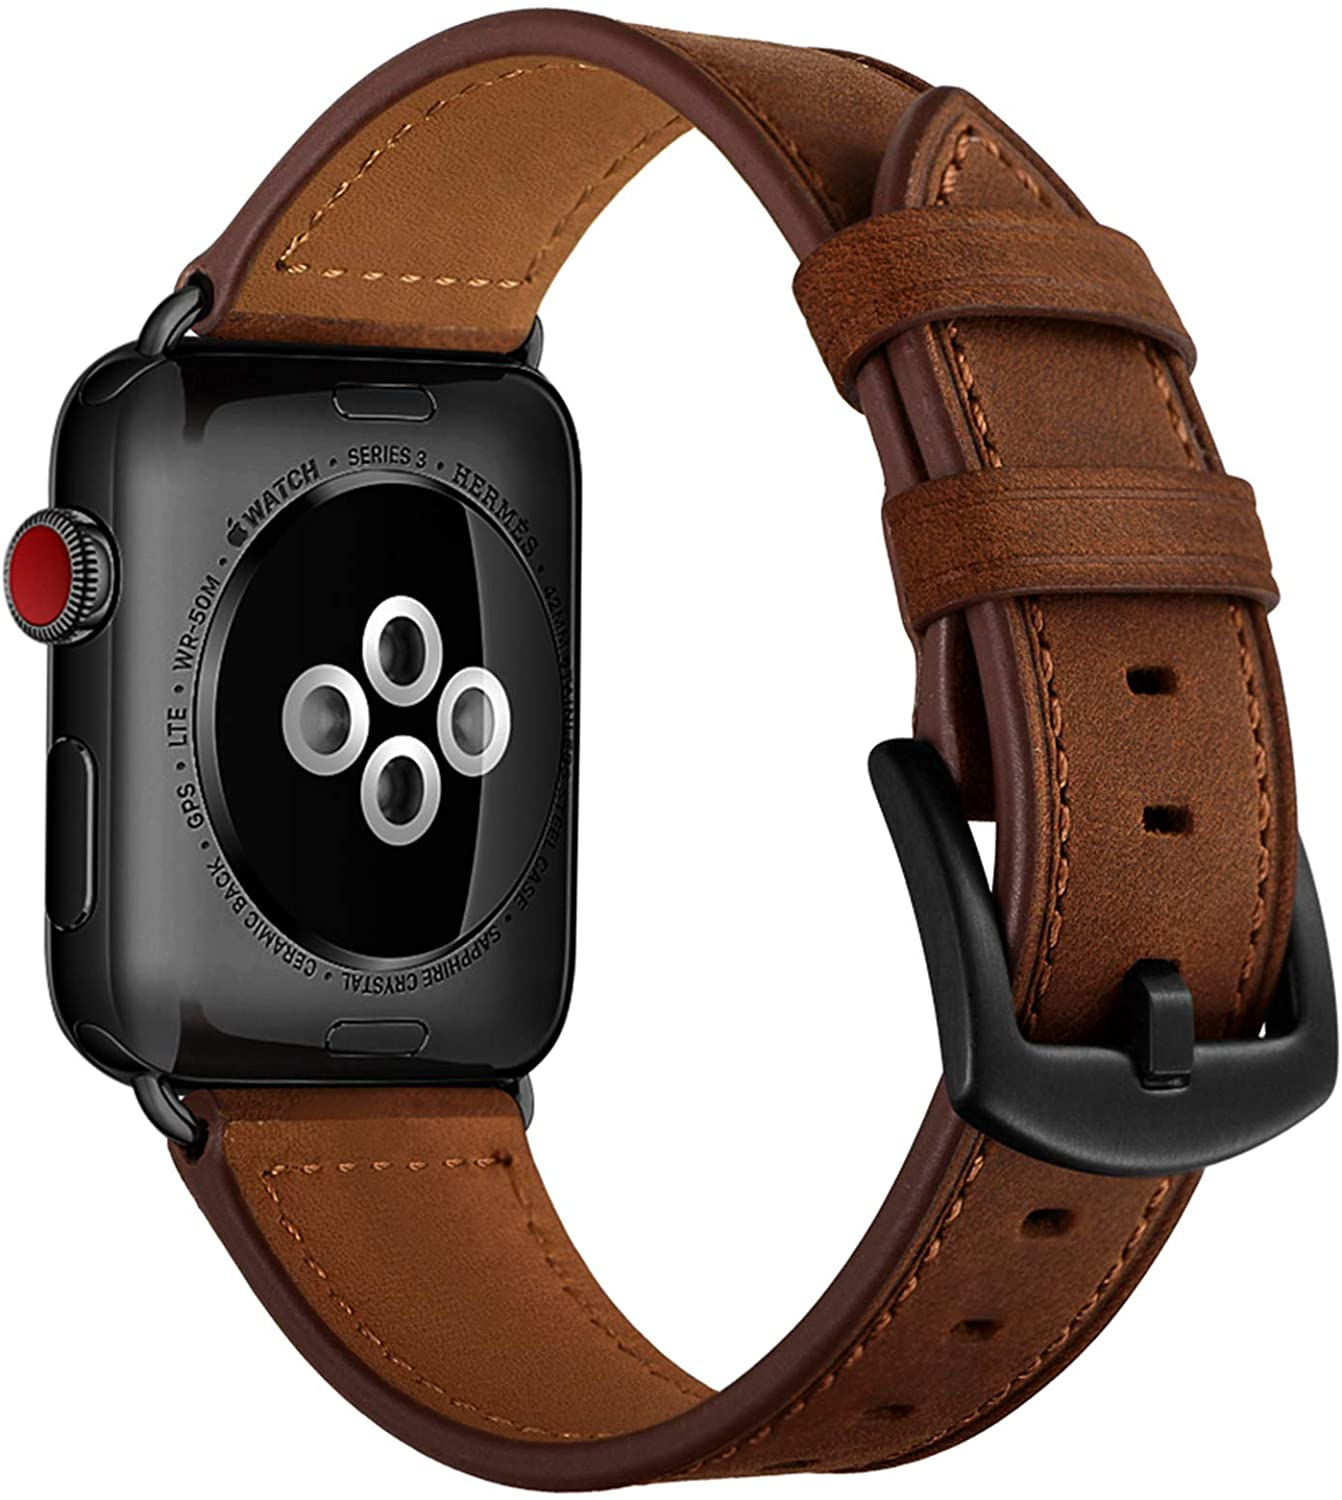 CINORS Leather Band Compatible with Apple Watch Vintage Classical Bands Dark Brown Replacement Strap for iWatch Series 6 5 4 3 2 1 SE Nike Space Black Grey 38mm 40mm Men Women, Brown